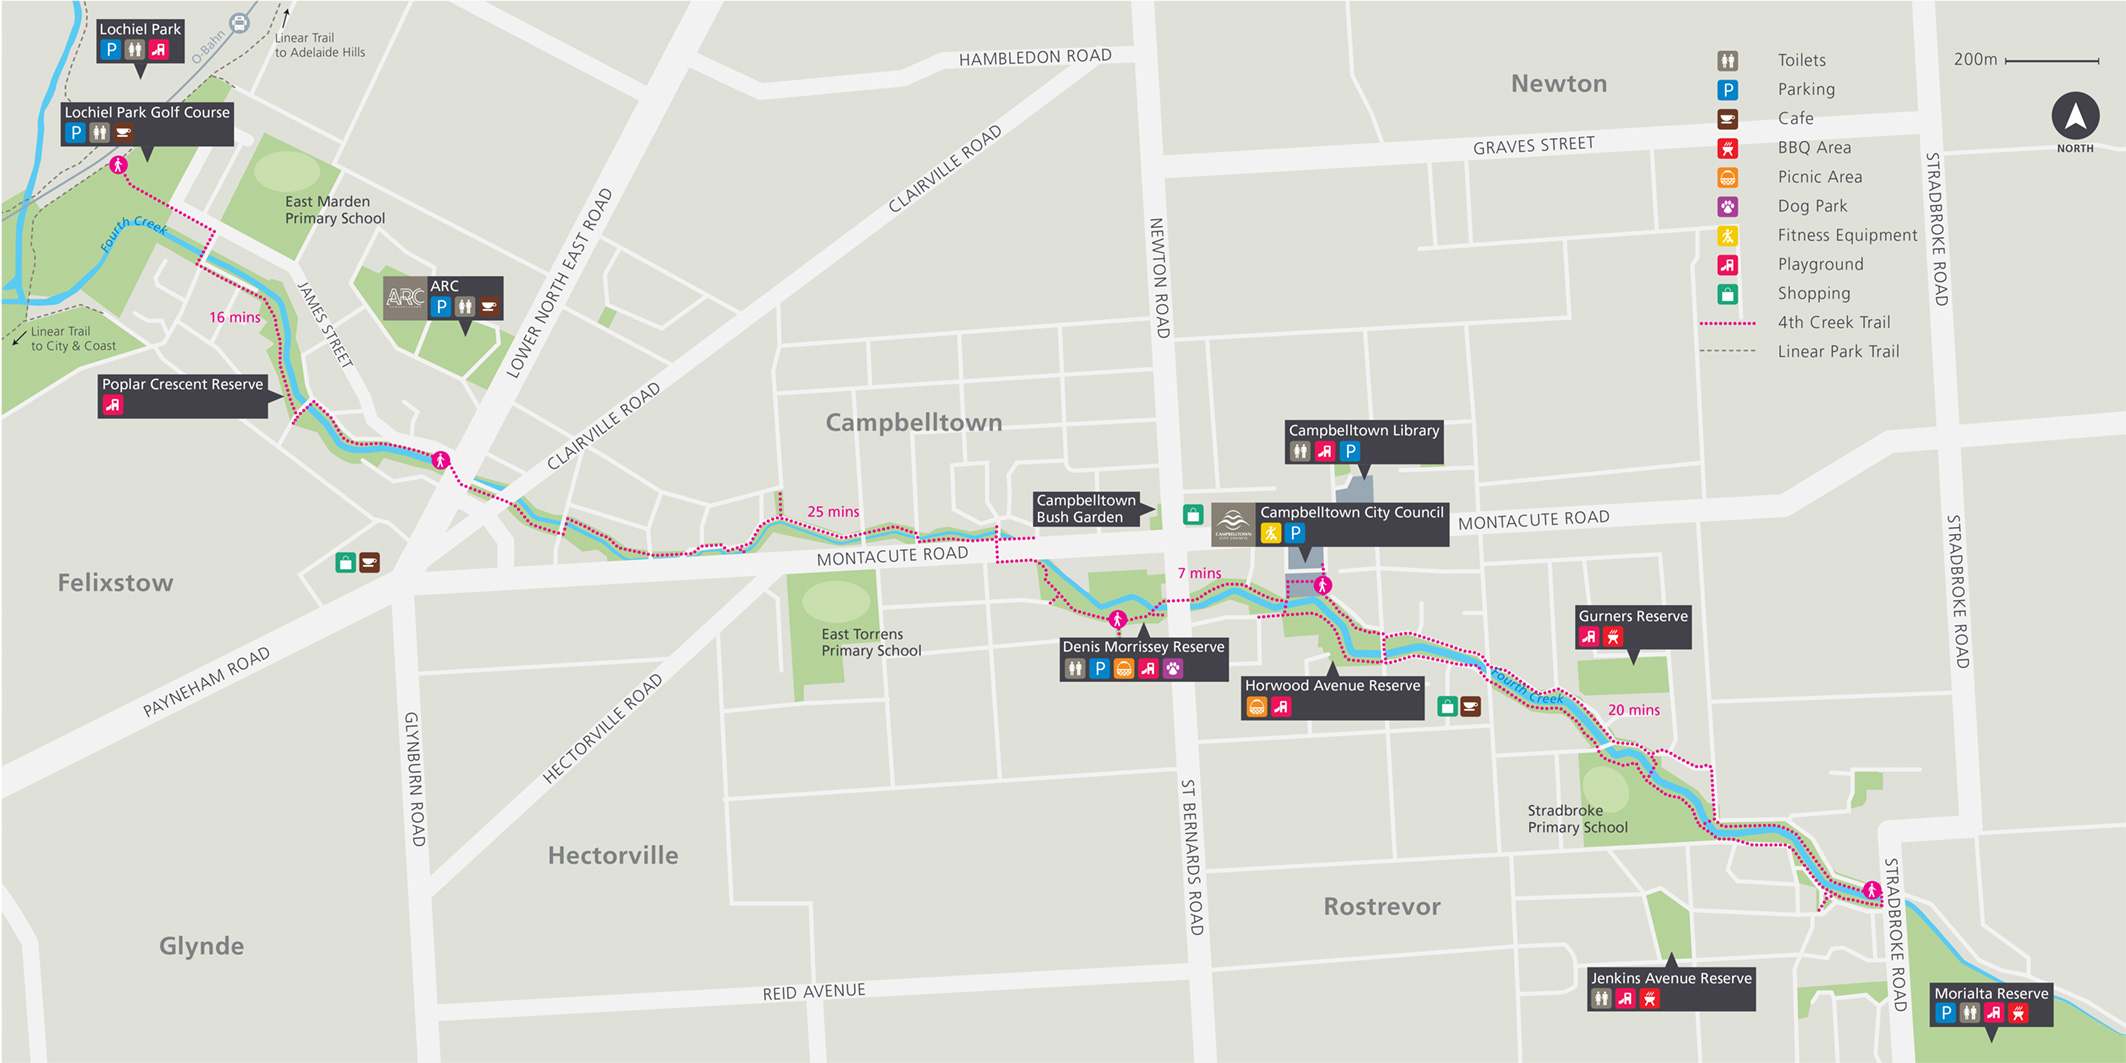 City of Campbelltown Fourth Creek Walking Trail Map